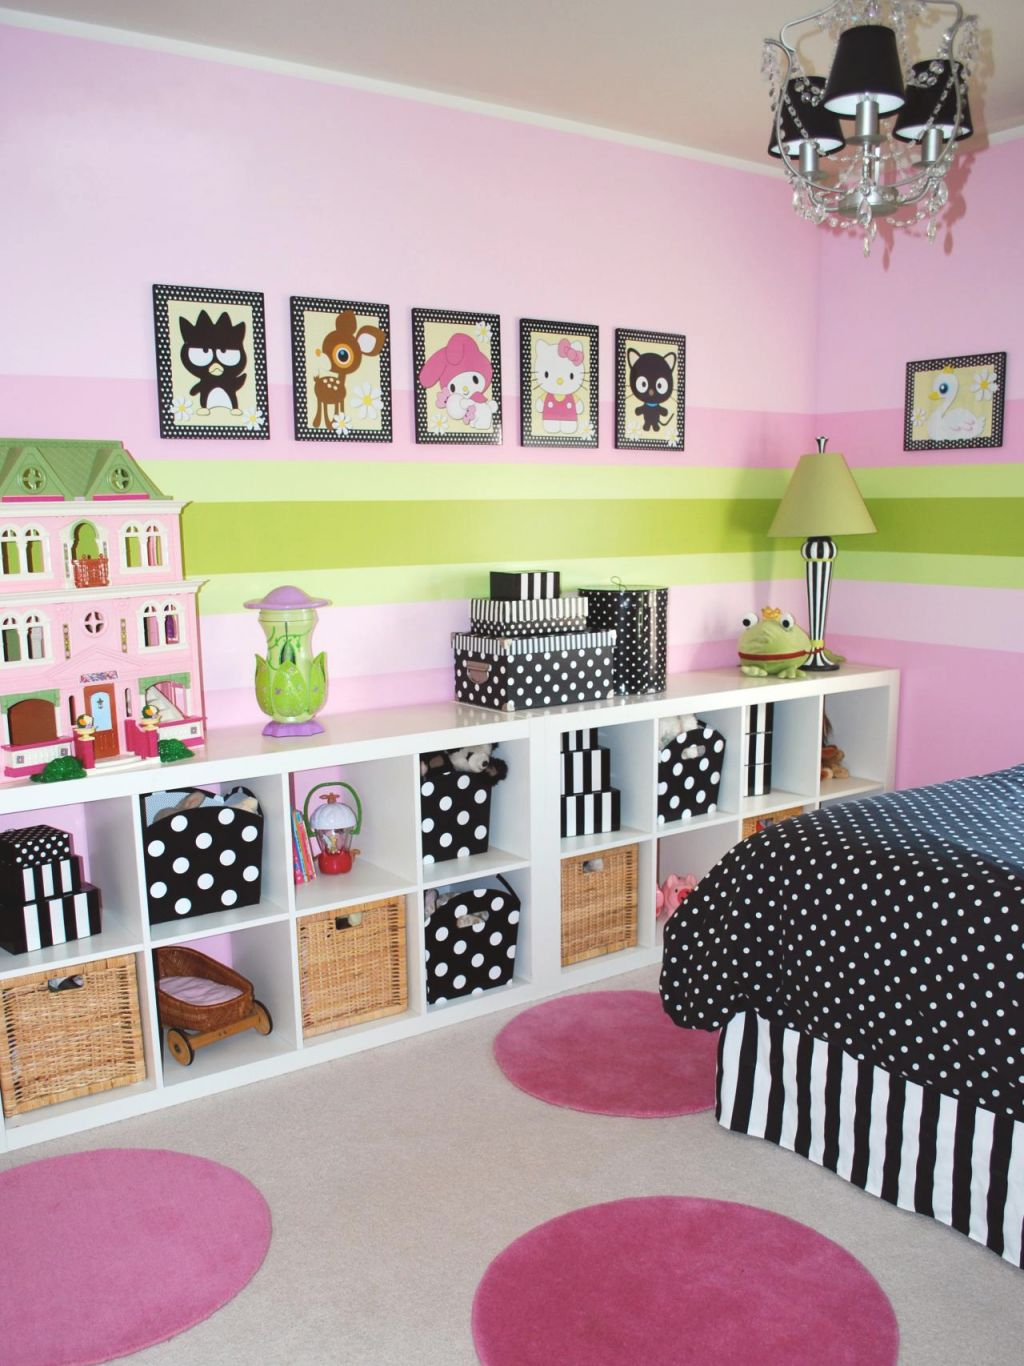 10 Decorating Ideas For Kids' Rooms | Hgtv with regard to Beautiful Bedroom Decorating Ideas For Girls